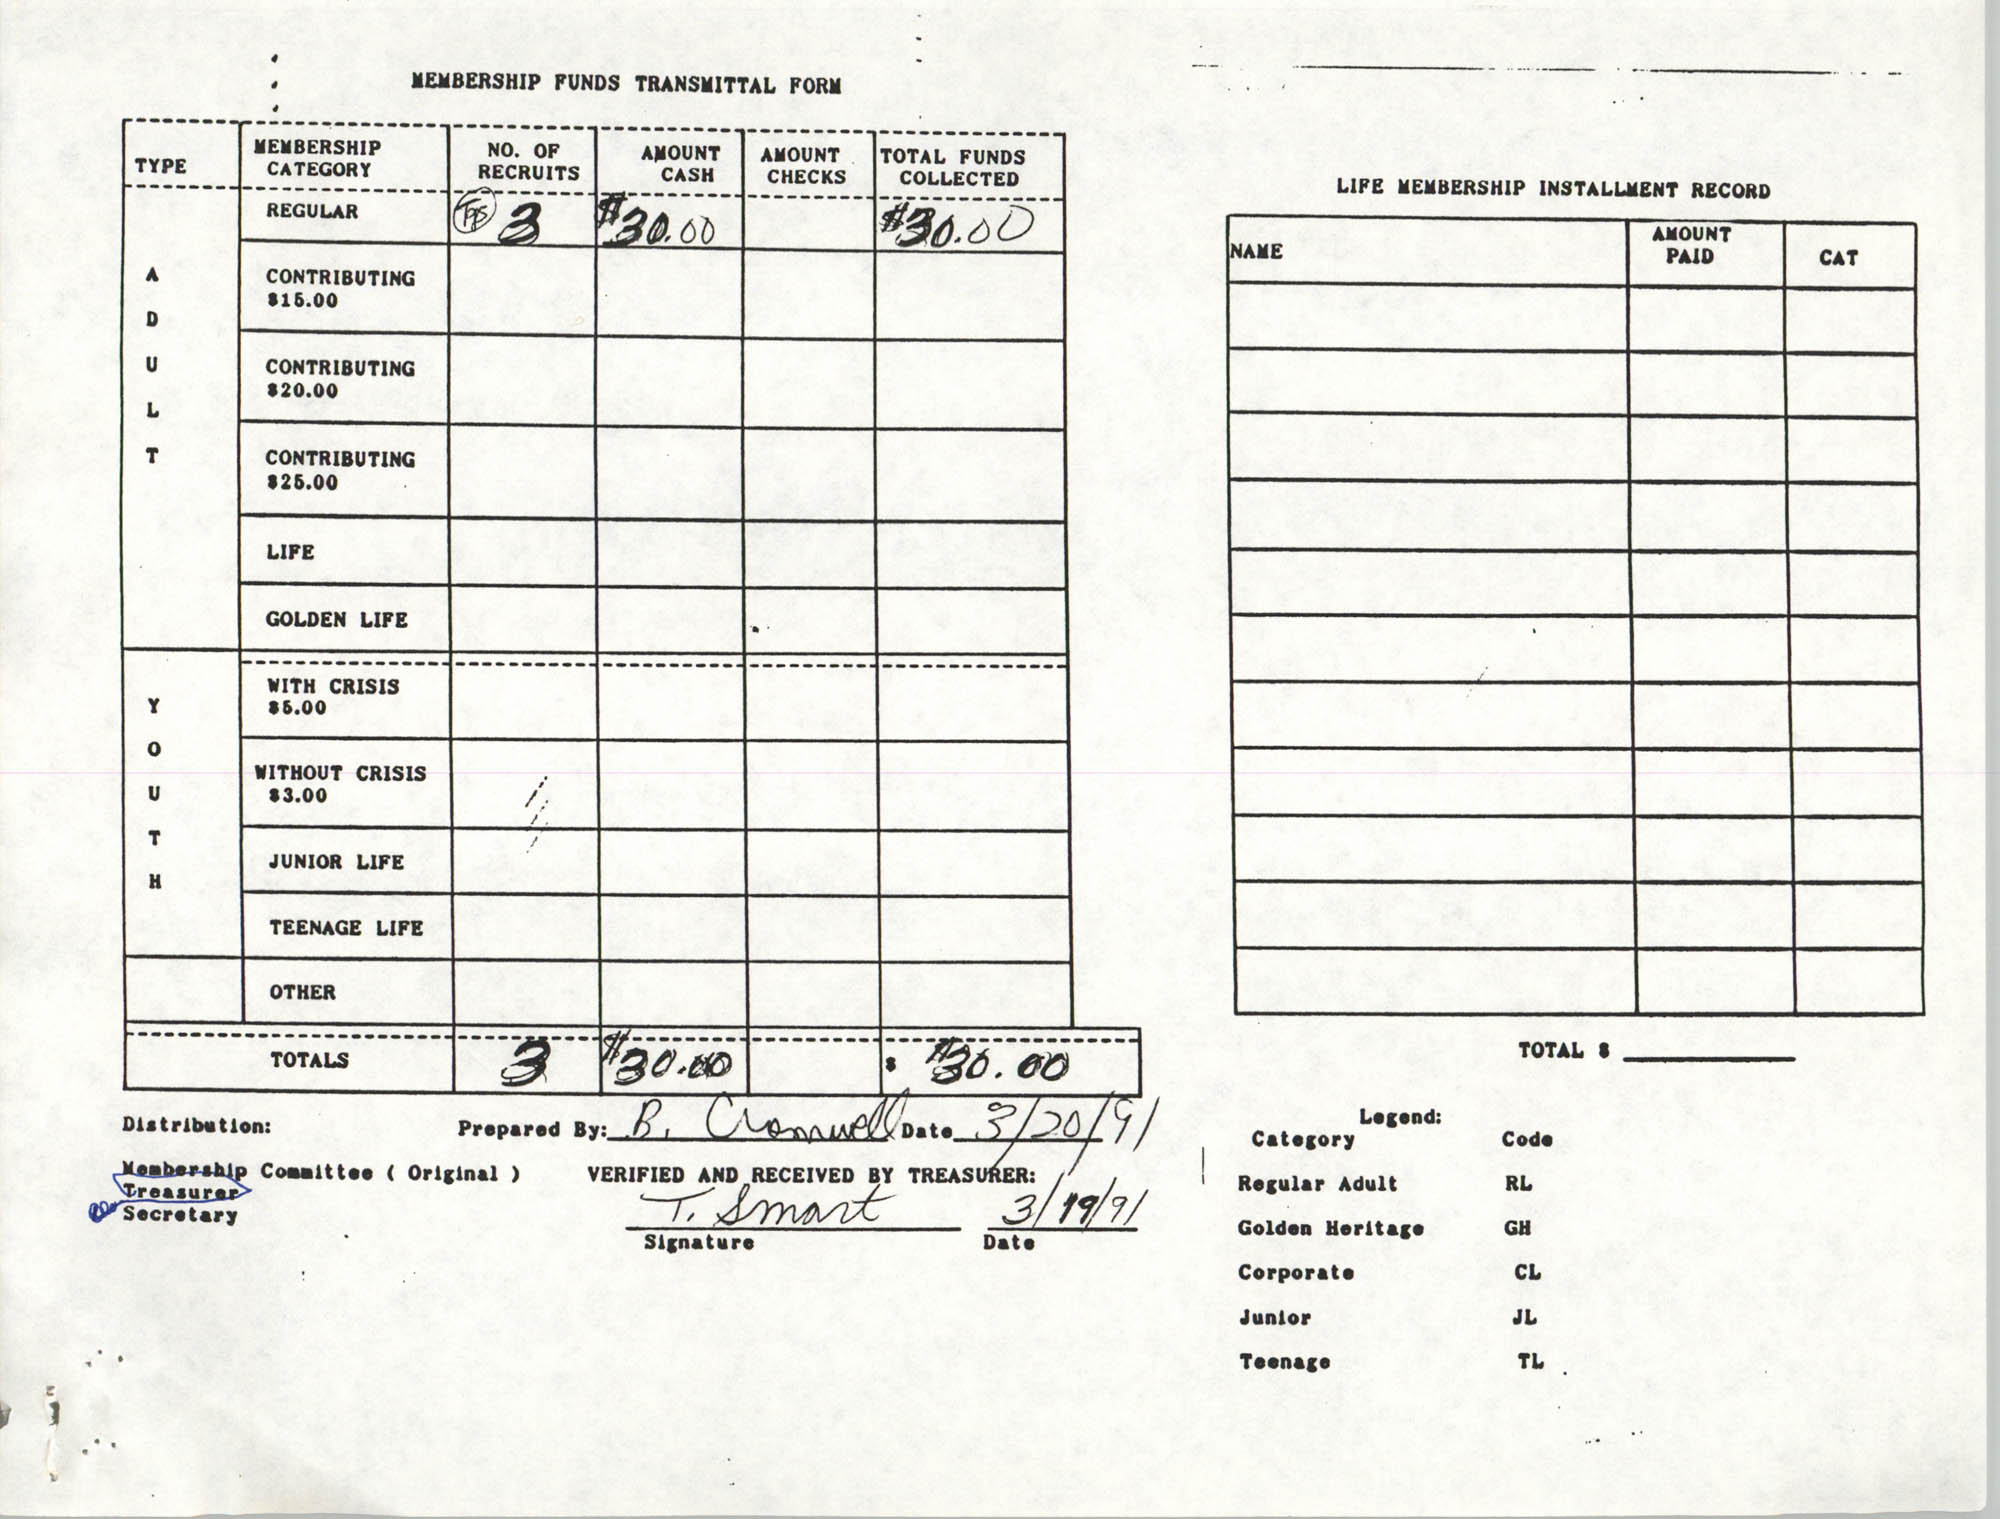 Charleston Branch of the NAACP Funds Transmittal Forms, March 1991, Page 10